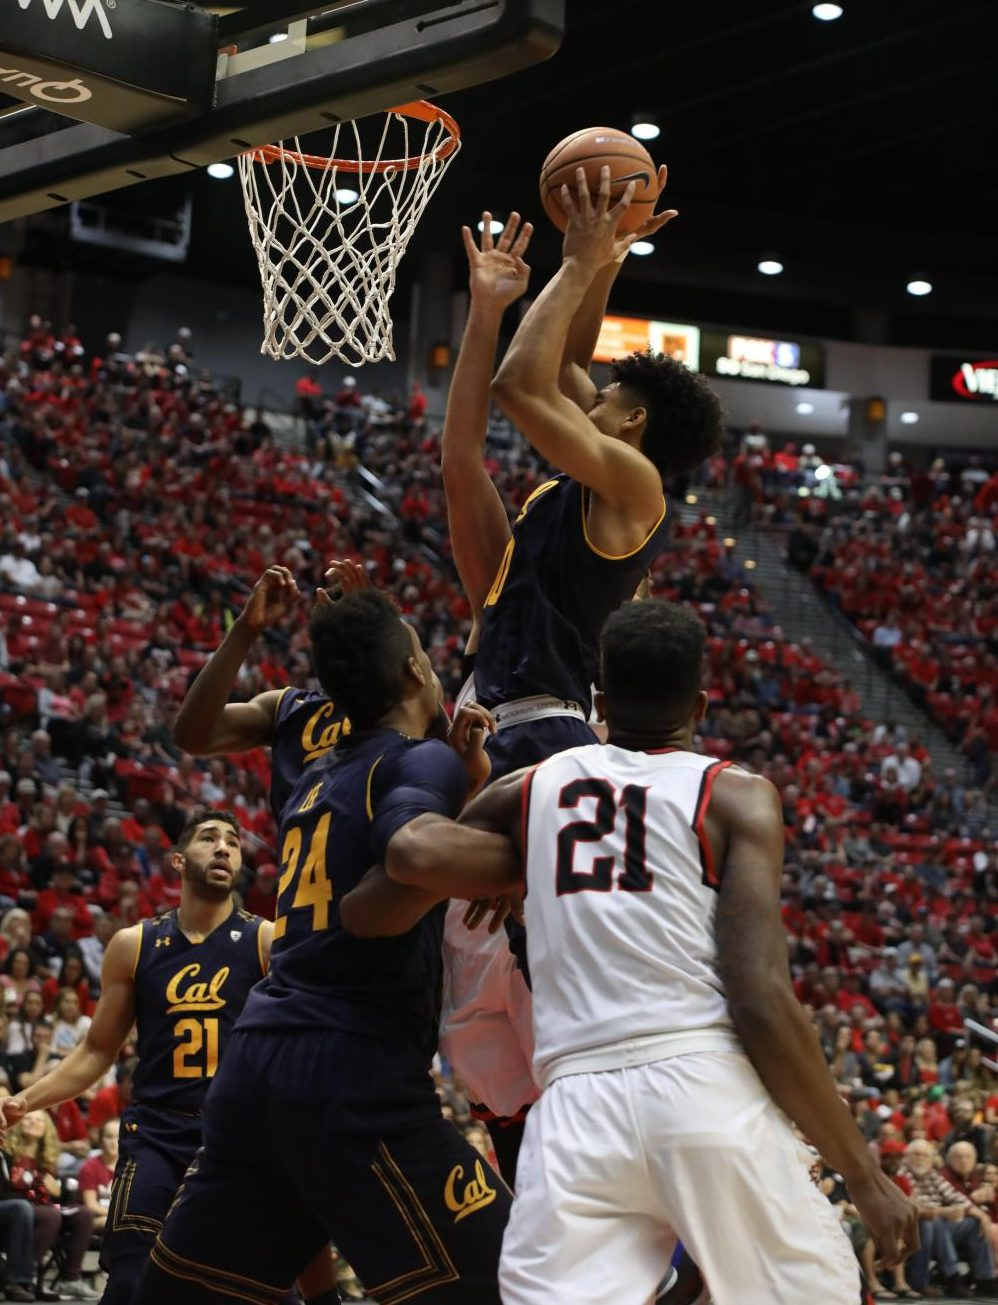 Malik Pope (21) looks on as Cal freshman forward Justice Sueing attempts a shot in the Aztecs 63-62 loss at Viejas Arena on Dec. 9